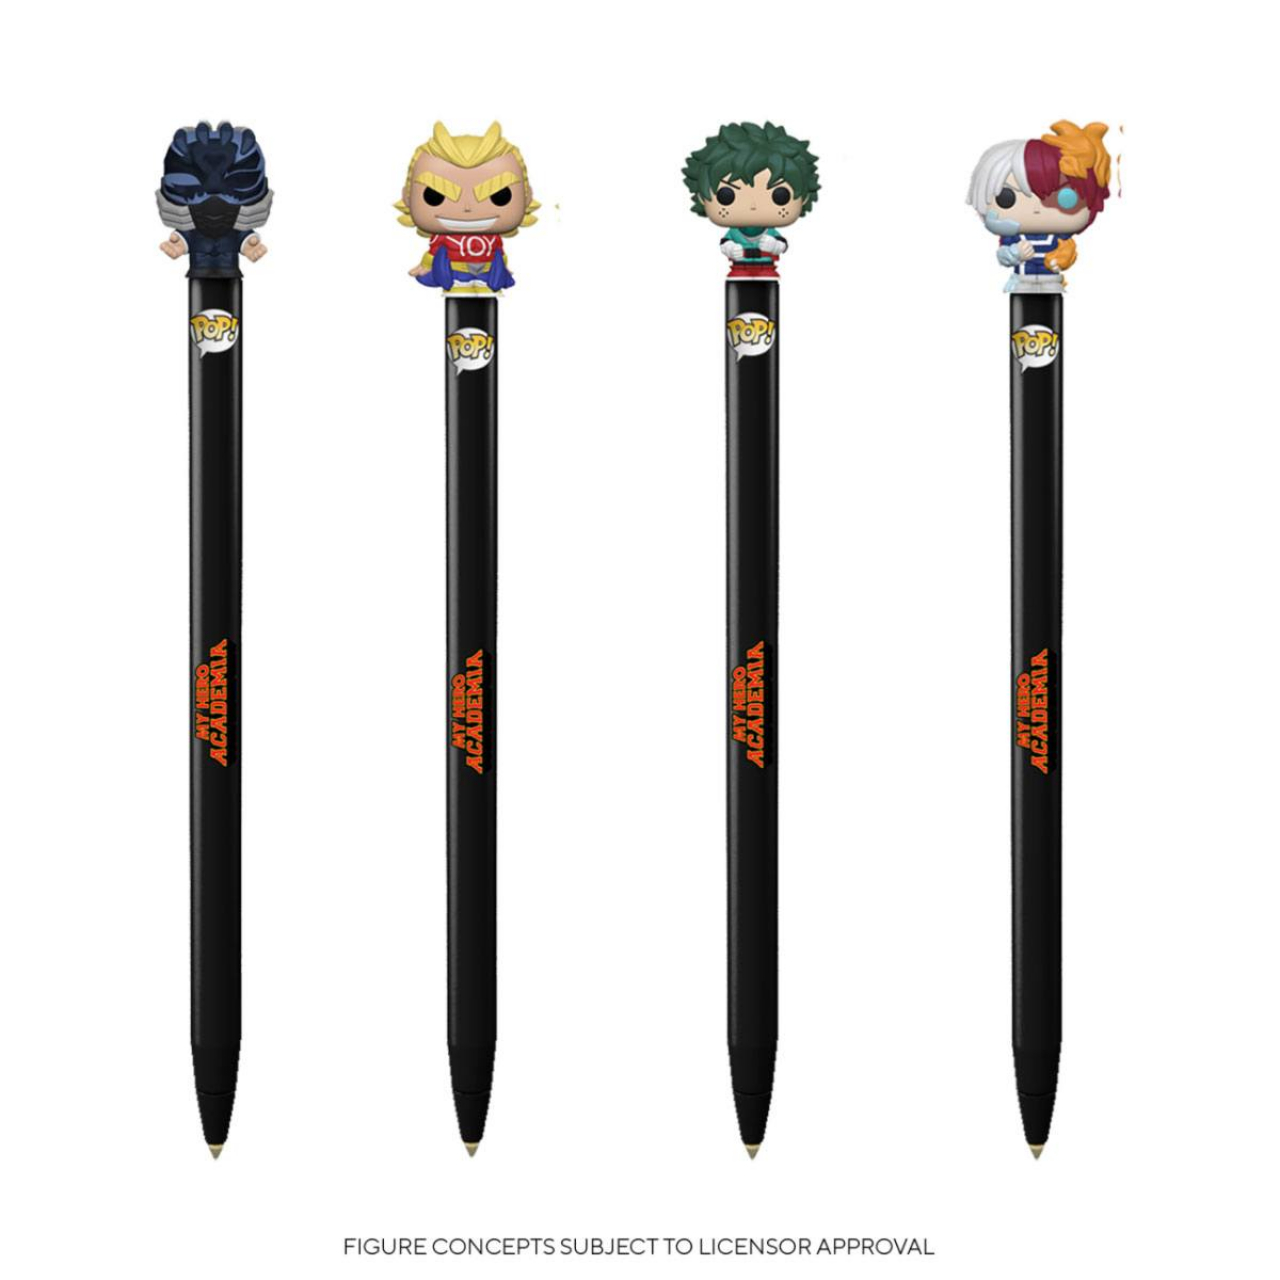 My Hero Academia POP! Homewares Pens with Toppers Display (16)